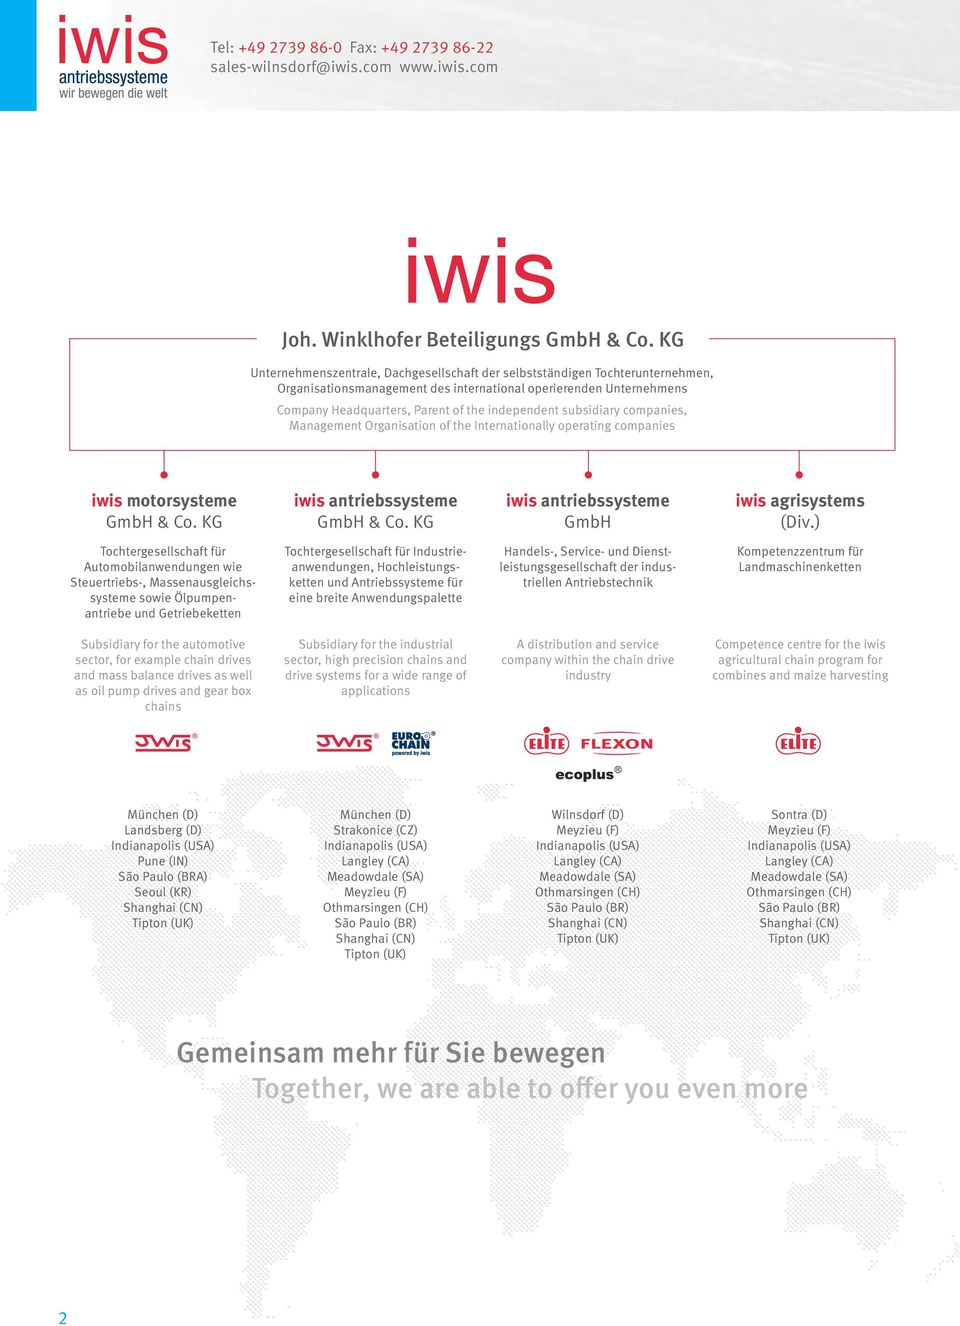 subsidiary companies, Management Organisation of the Internationally operating companies iwis motorsysteme GmbH & Co. KG iwis antriebssysteme GmbH & Co.